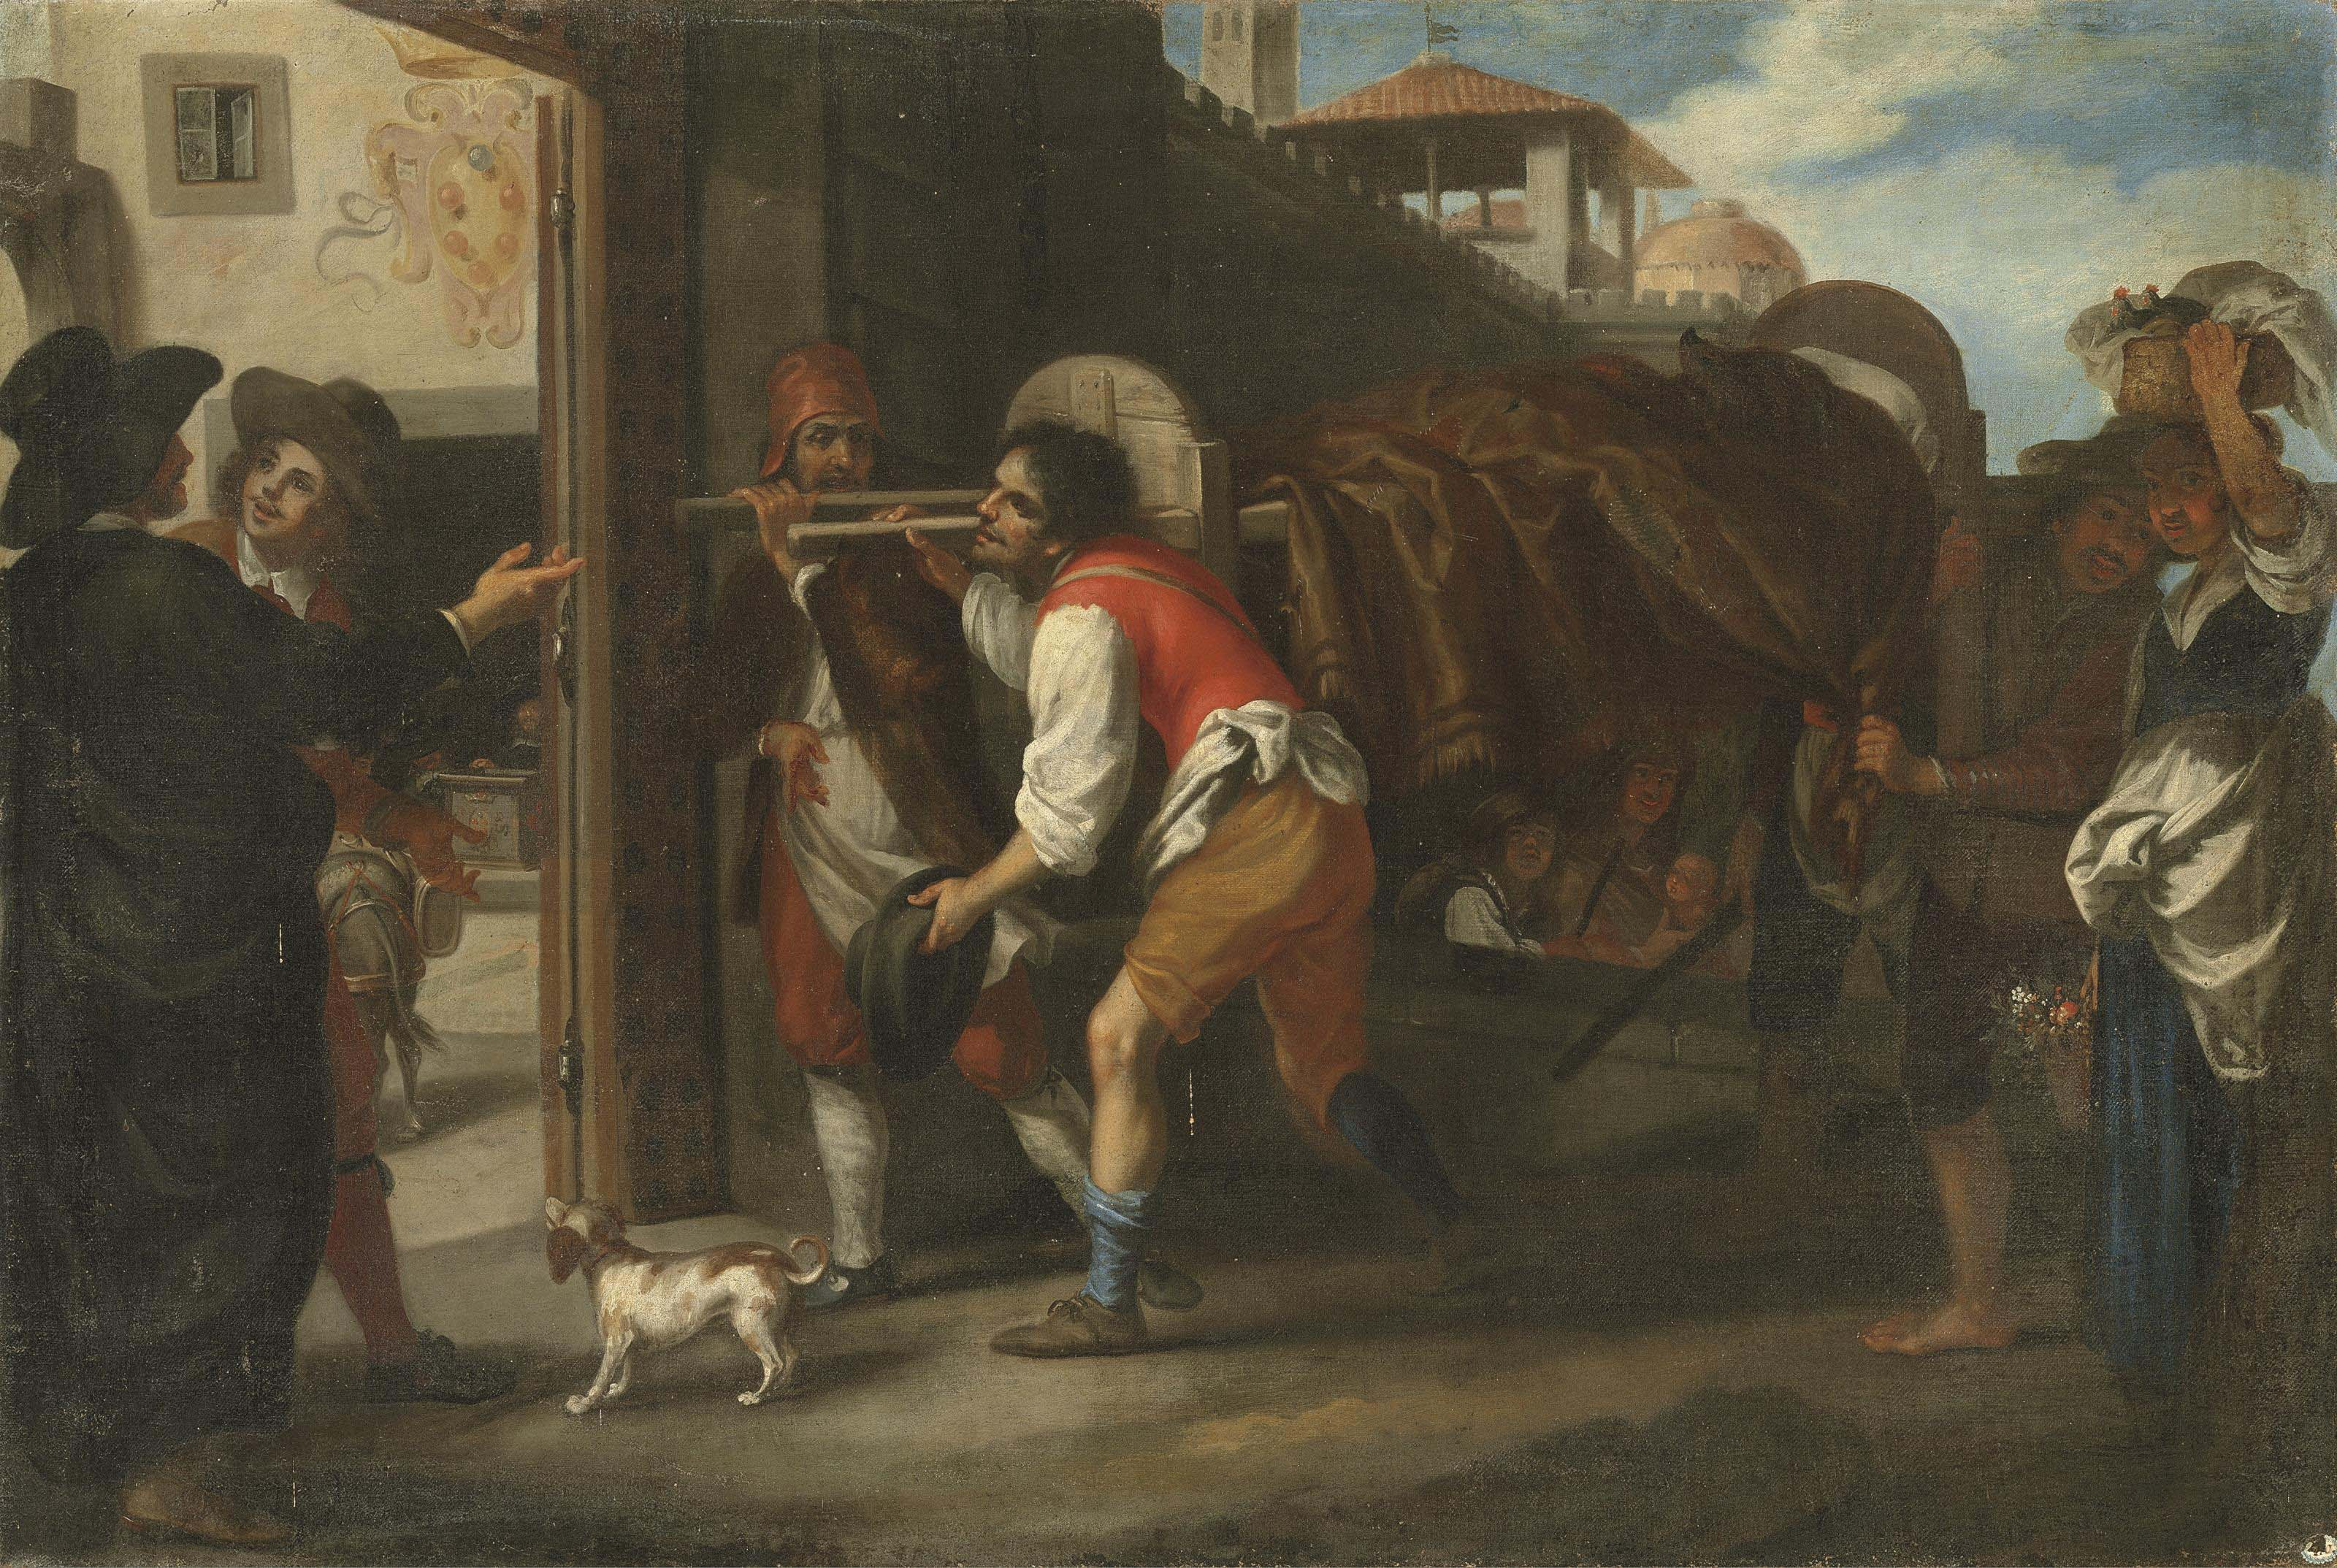 An episode from the stories of the Pievano Arlotto: The Pievano Arlotto smuggling a wild boar into the city of Florence